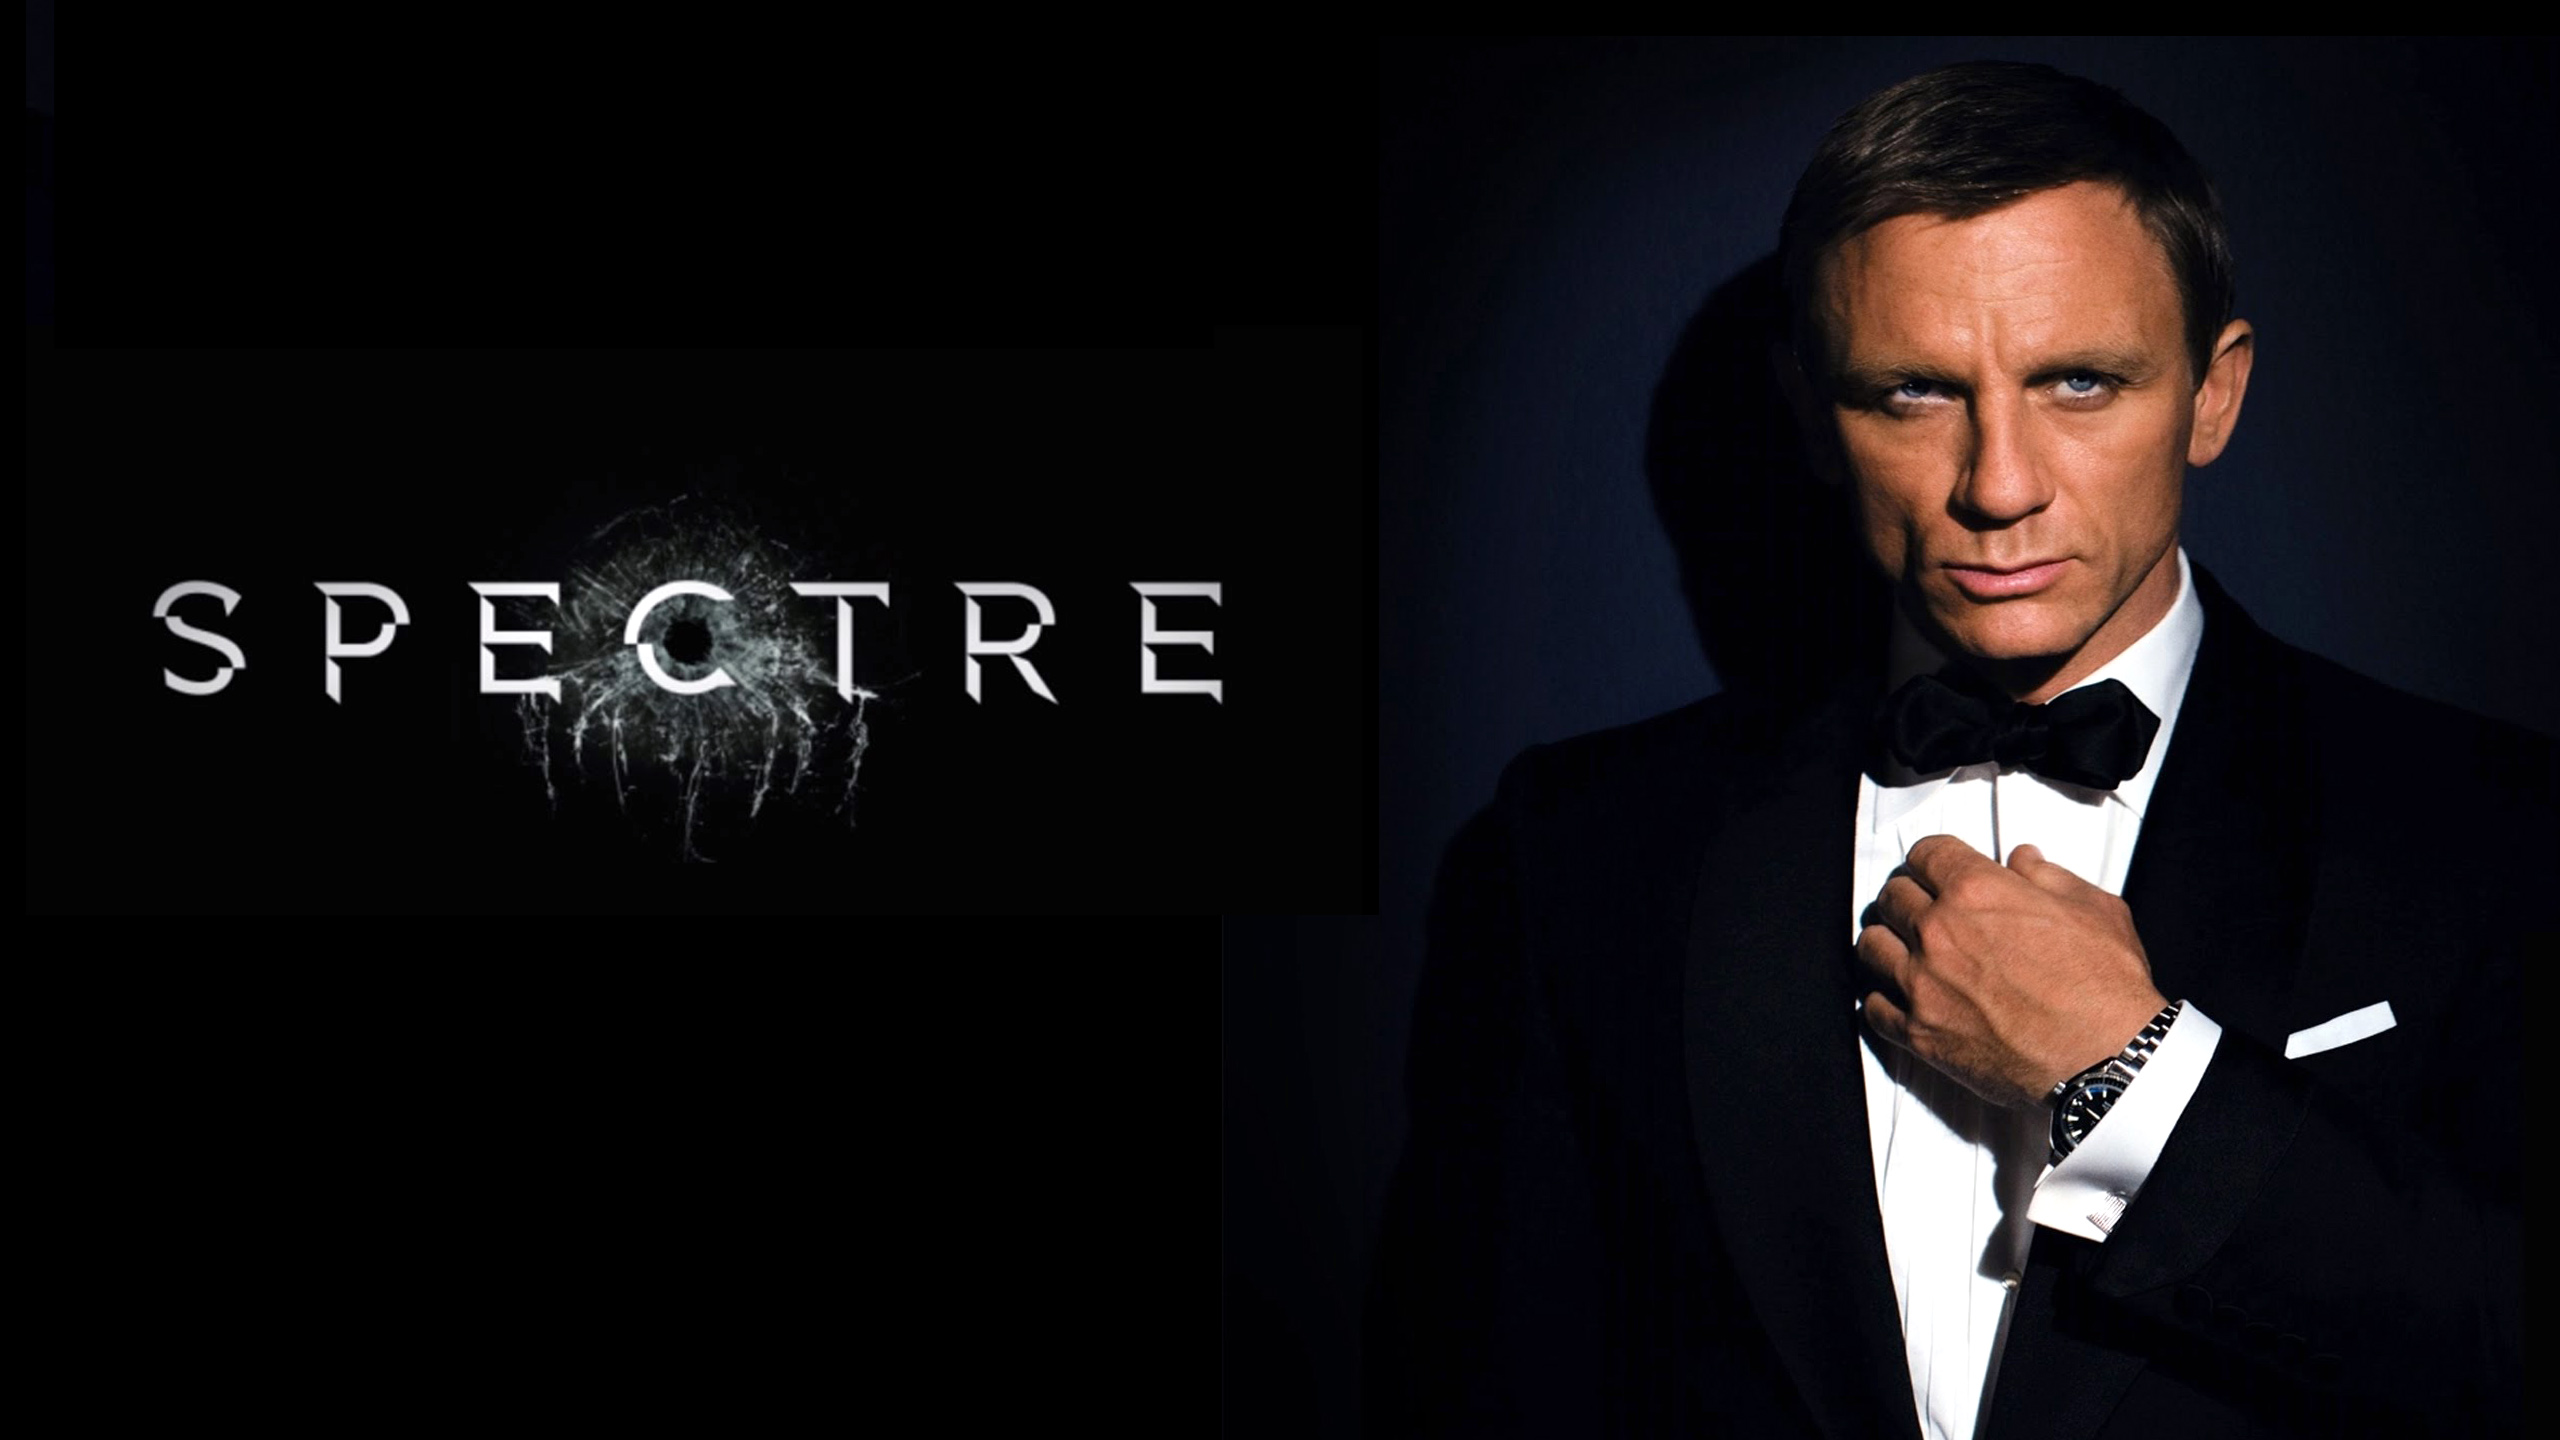 james-bond-007-spectre-movie-wallpaper